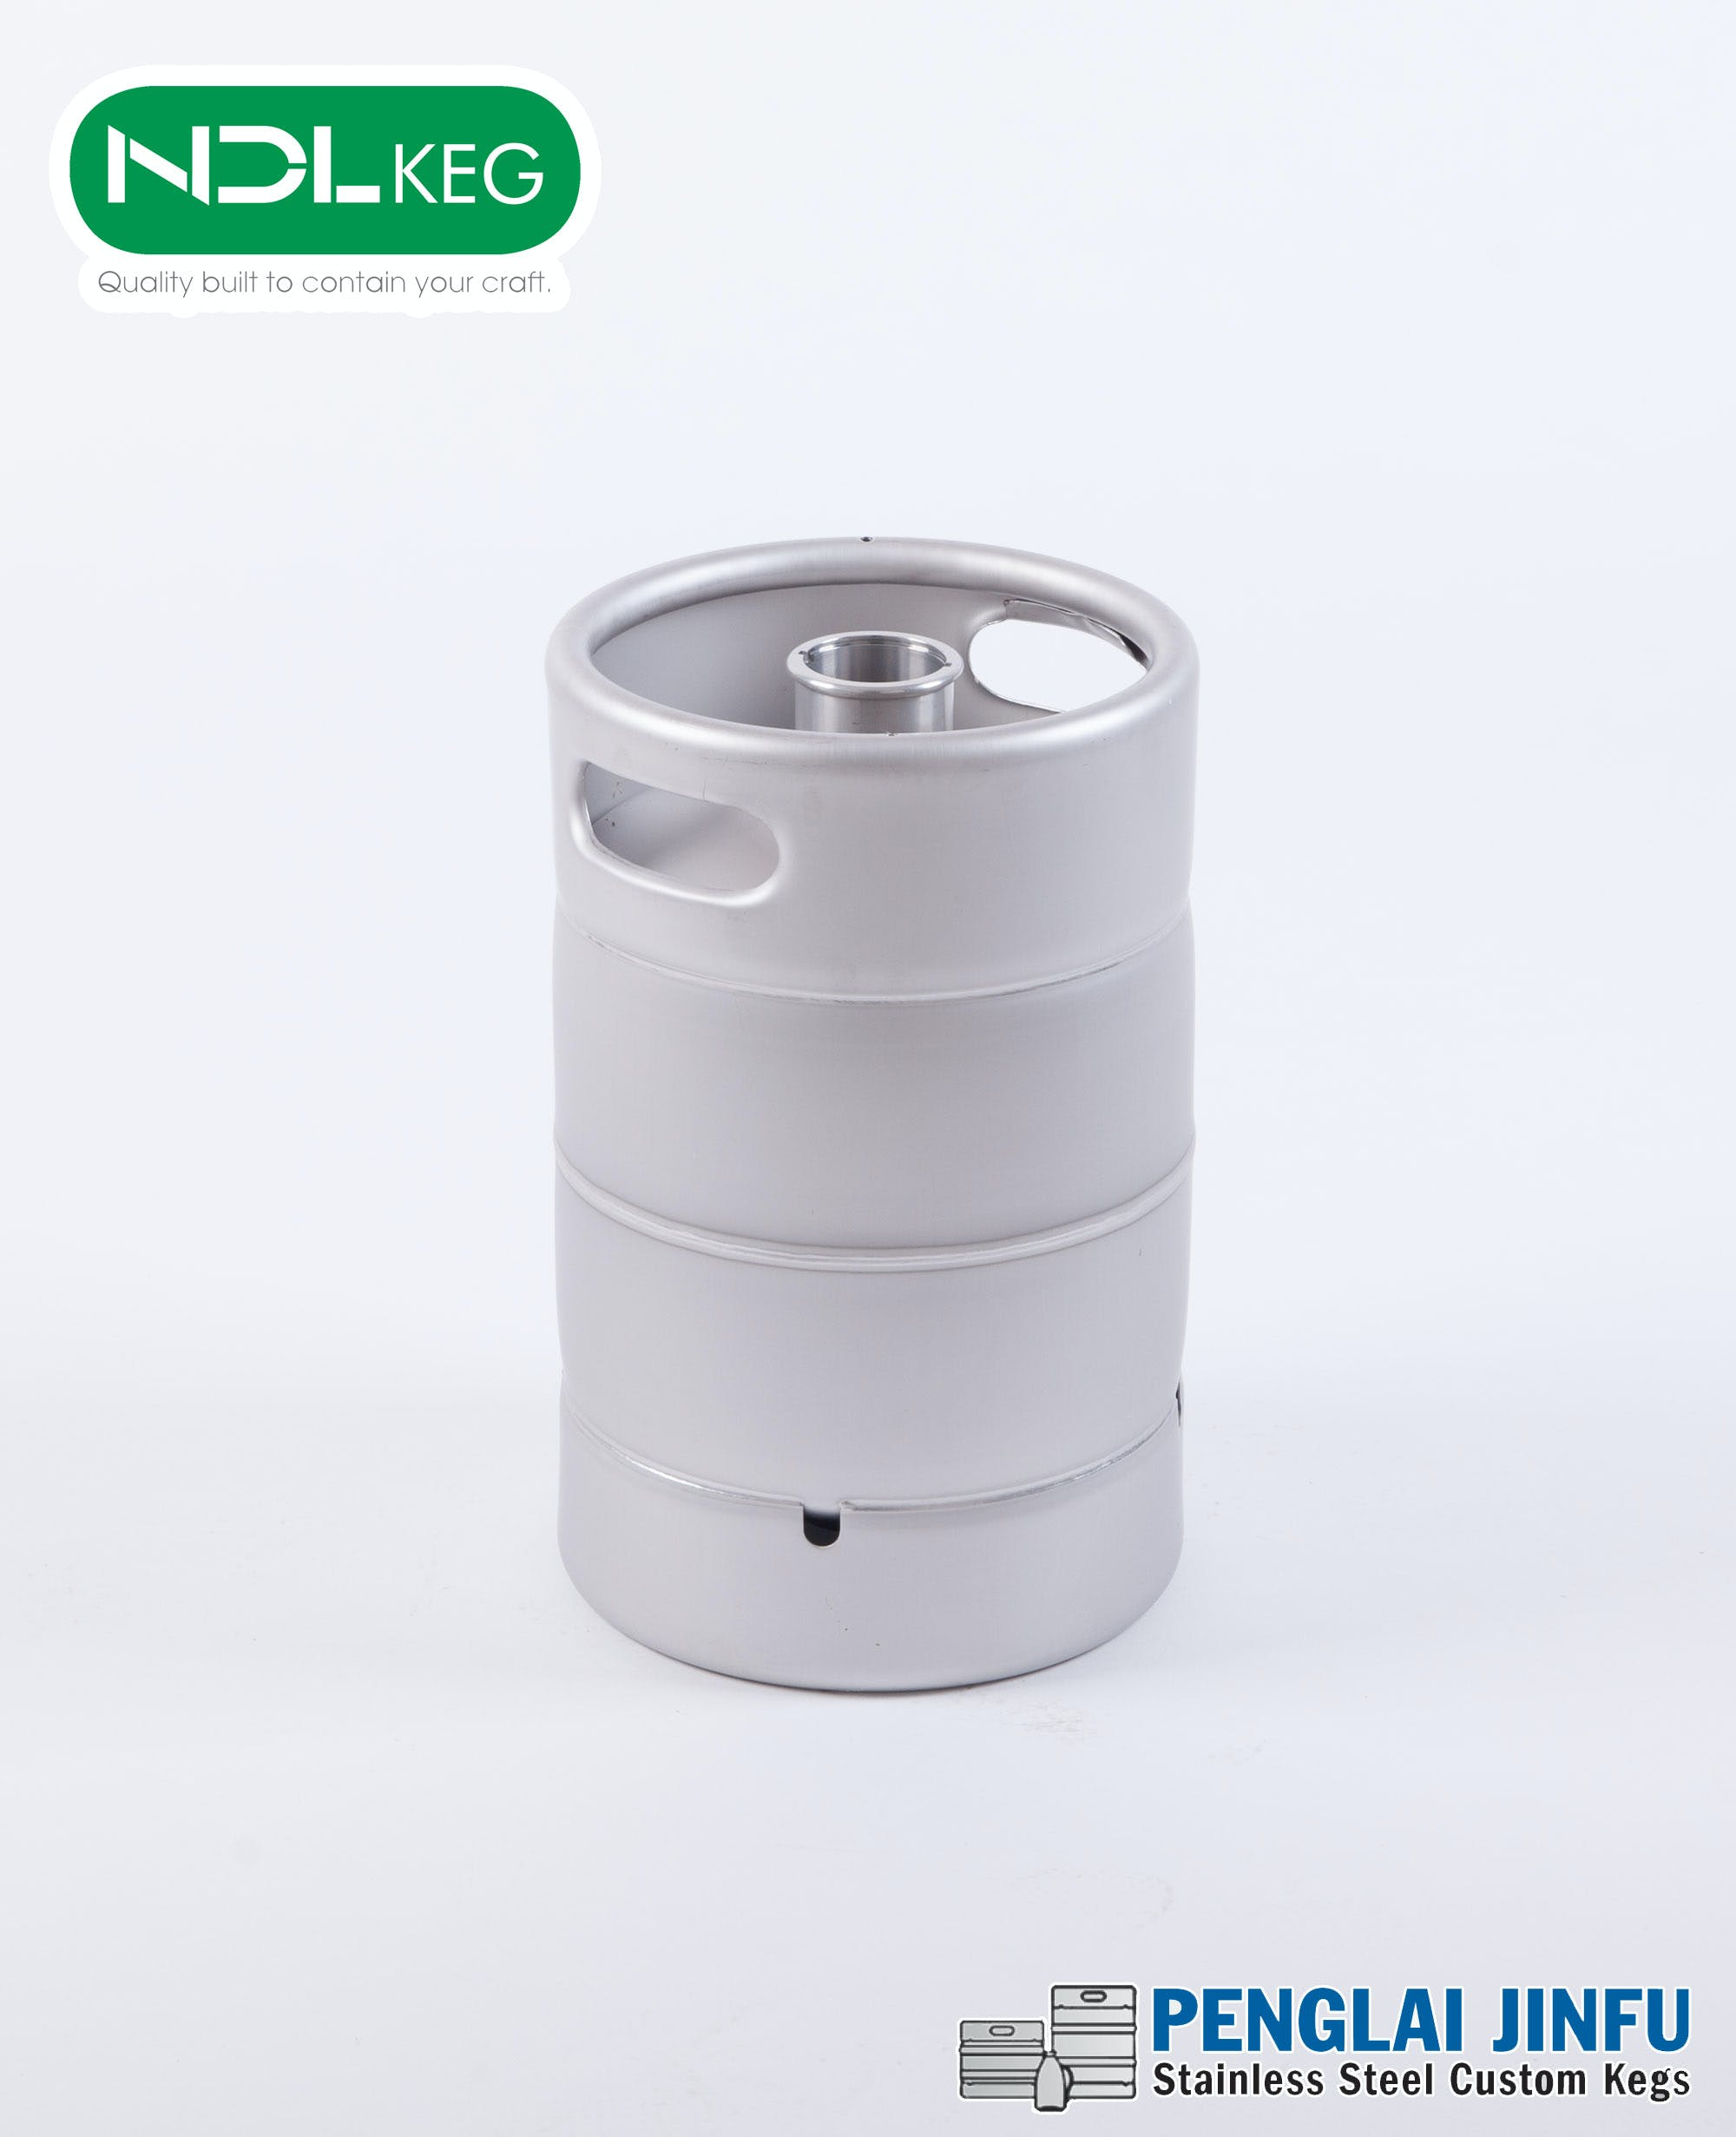 US 10L Stackable Keg sold by NDL Keg